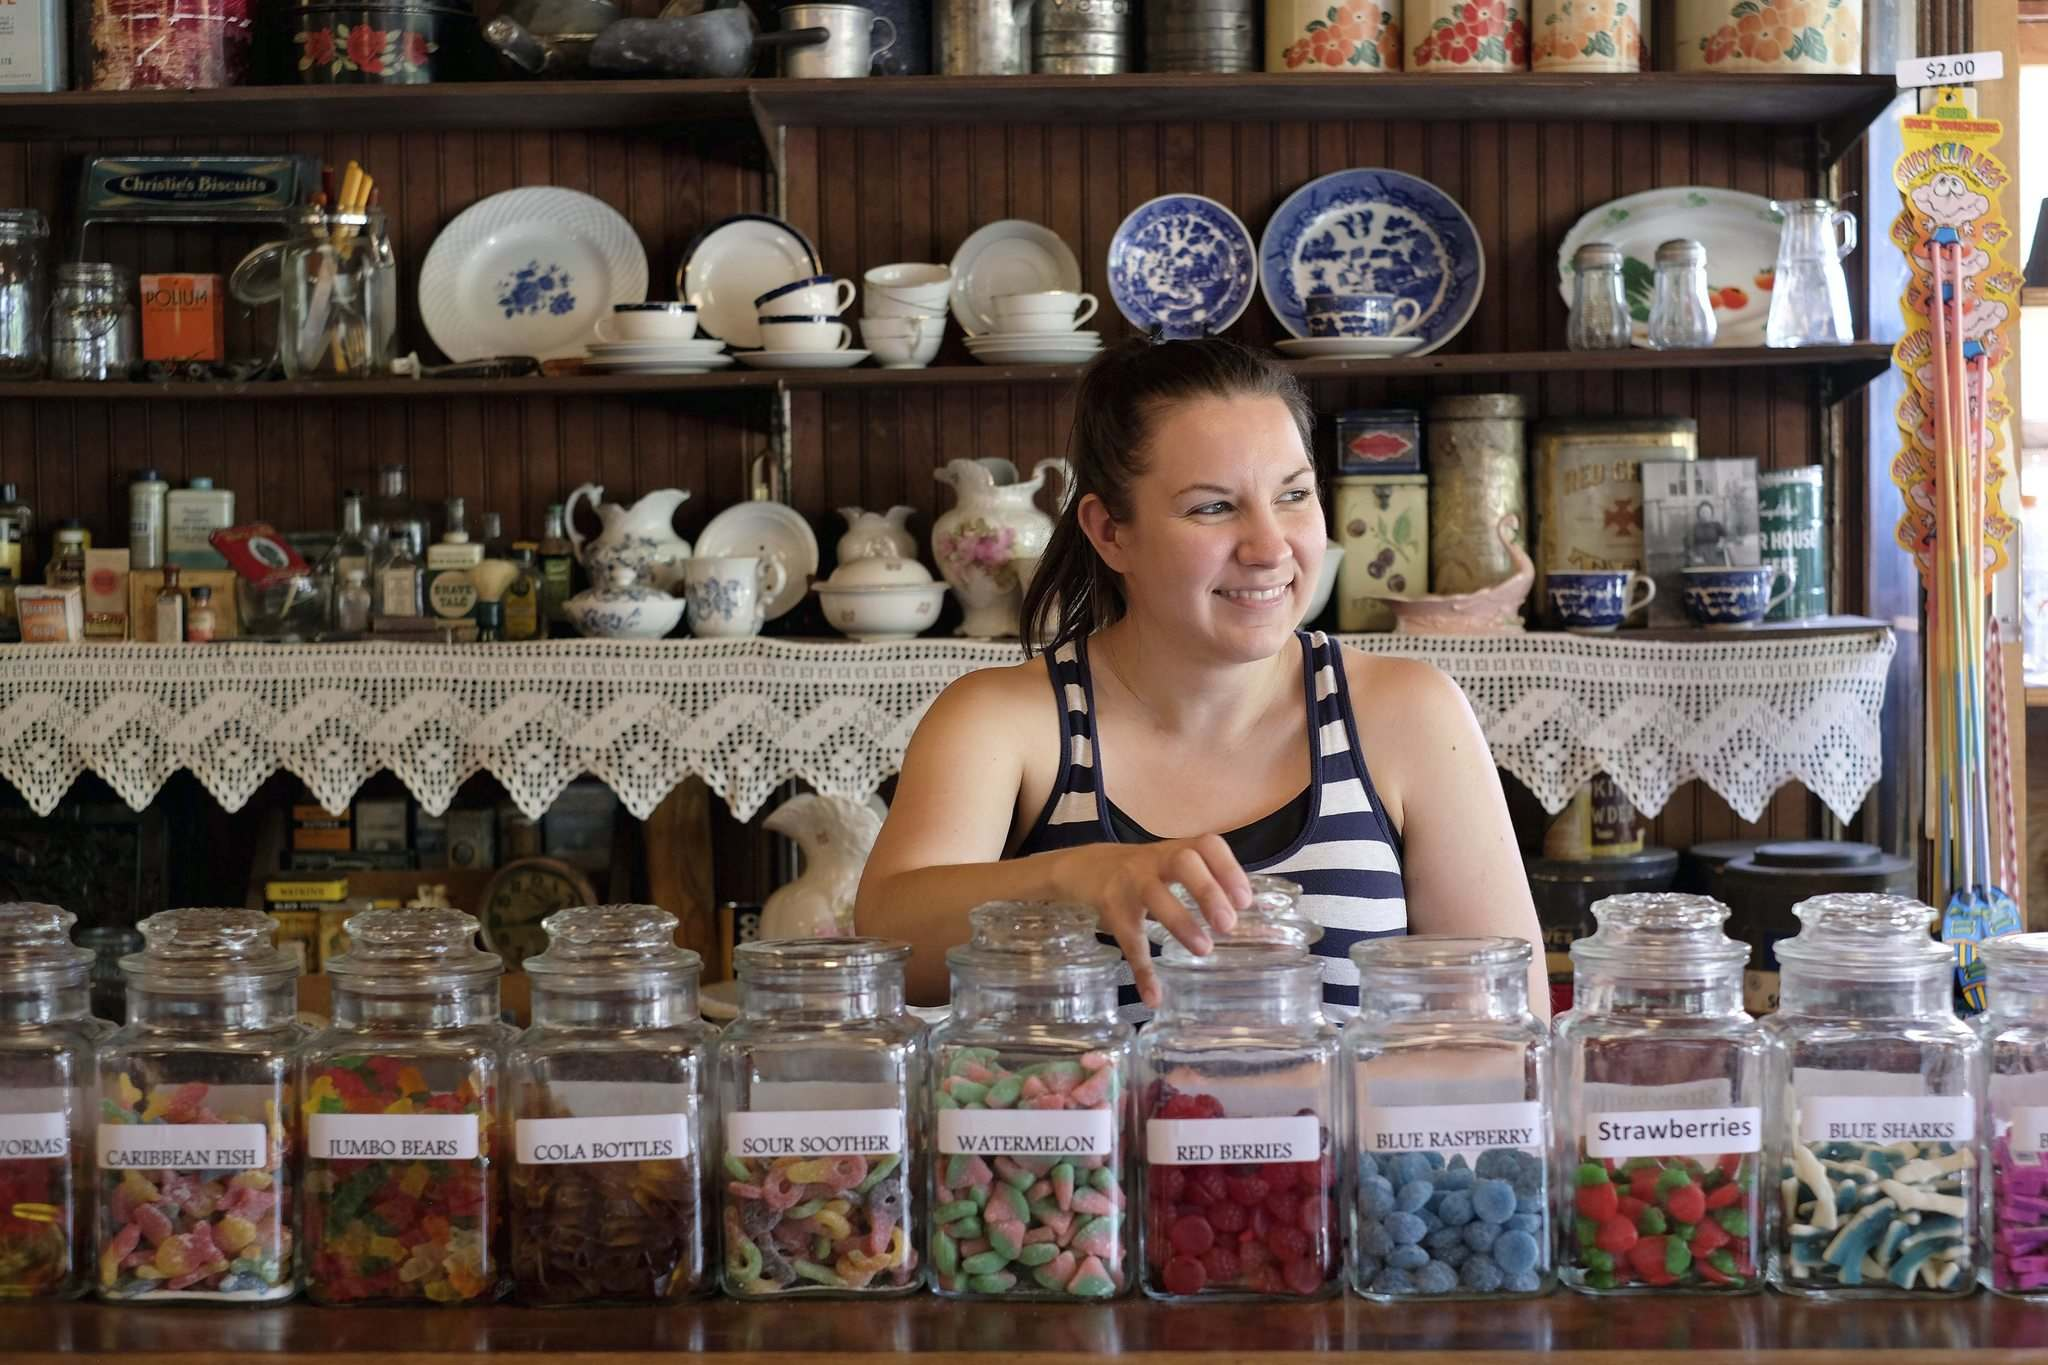 Amber Hiebert sells a variety of wares and treats in the Mennonite Heritage Village's General Store. (Shannon VanRaes / Winnipeg Free Press)